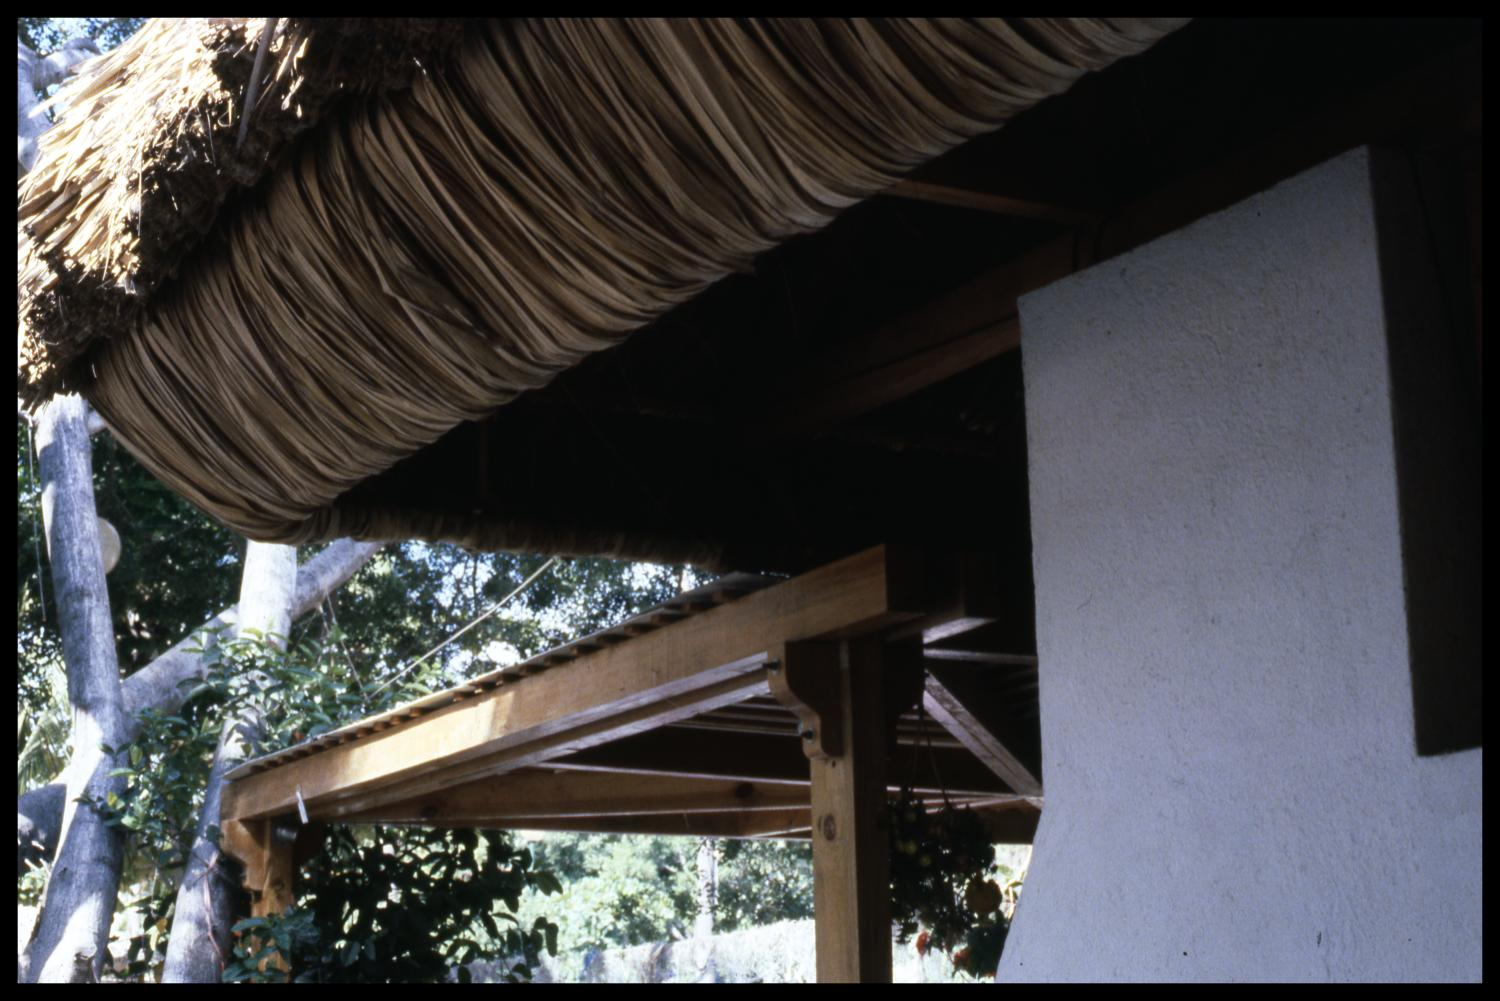 [Thatched Roof]                                                                                                      [Sequence #]: 1 of 1